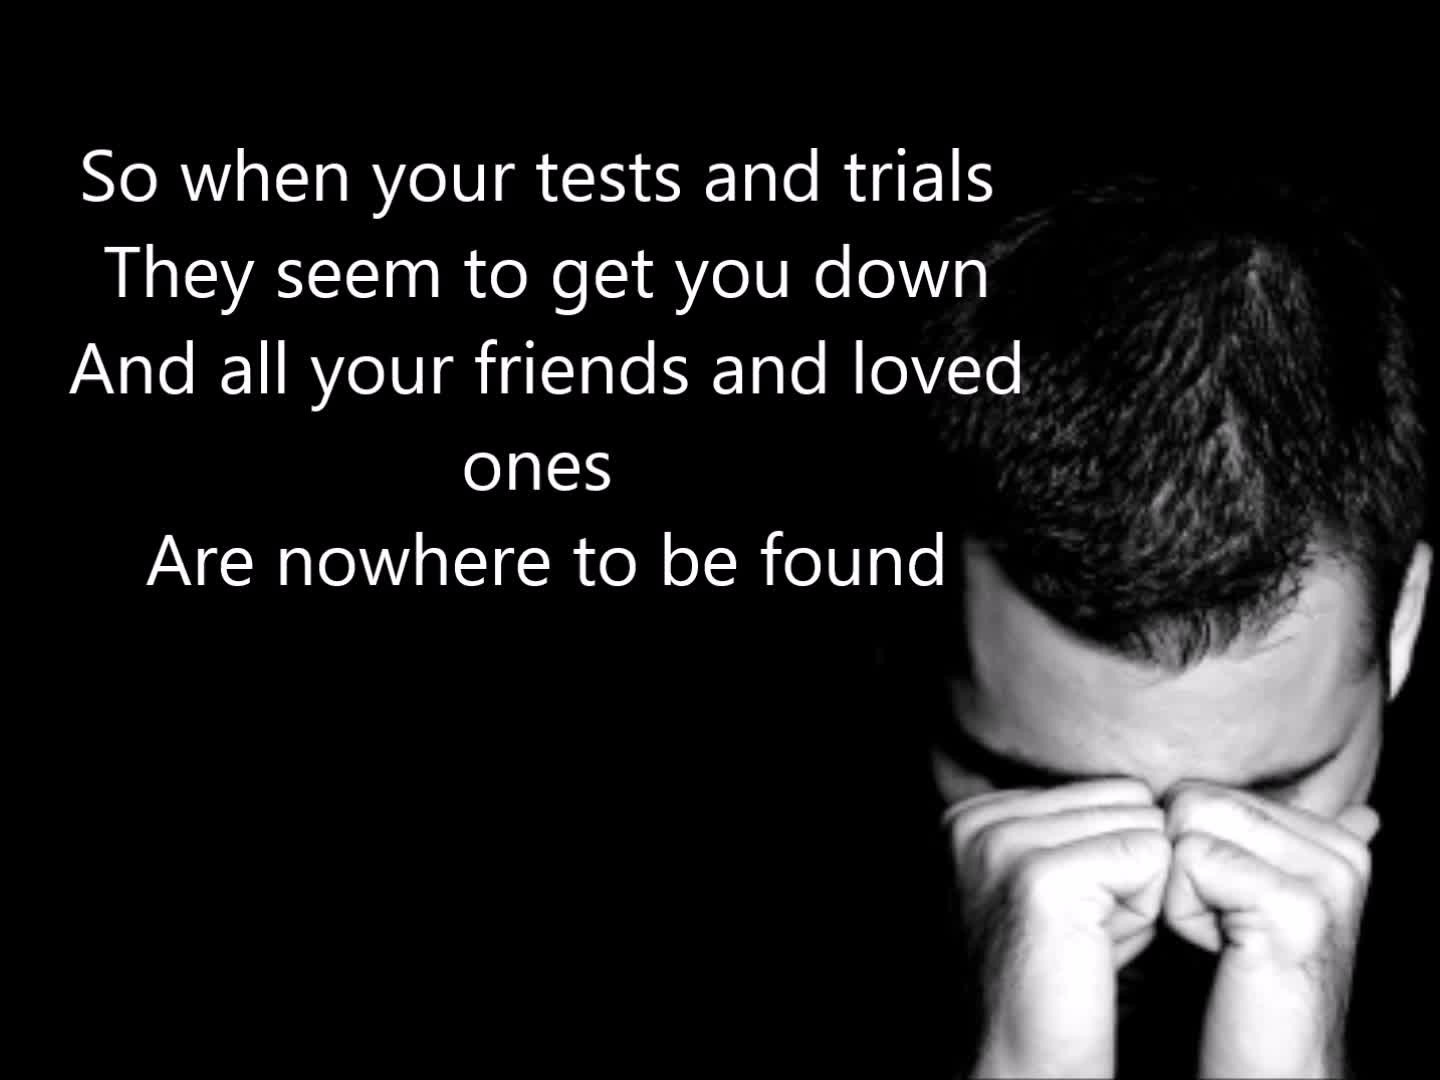 My Life is in Your Hands - Kirk Franklin (W/ Lyrics)